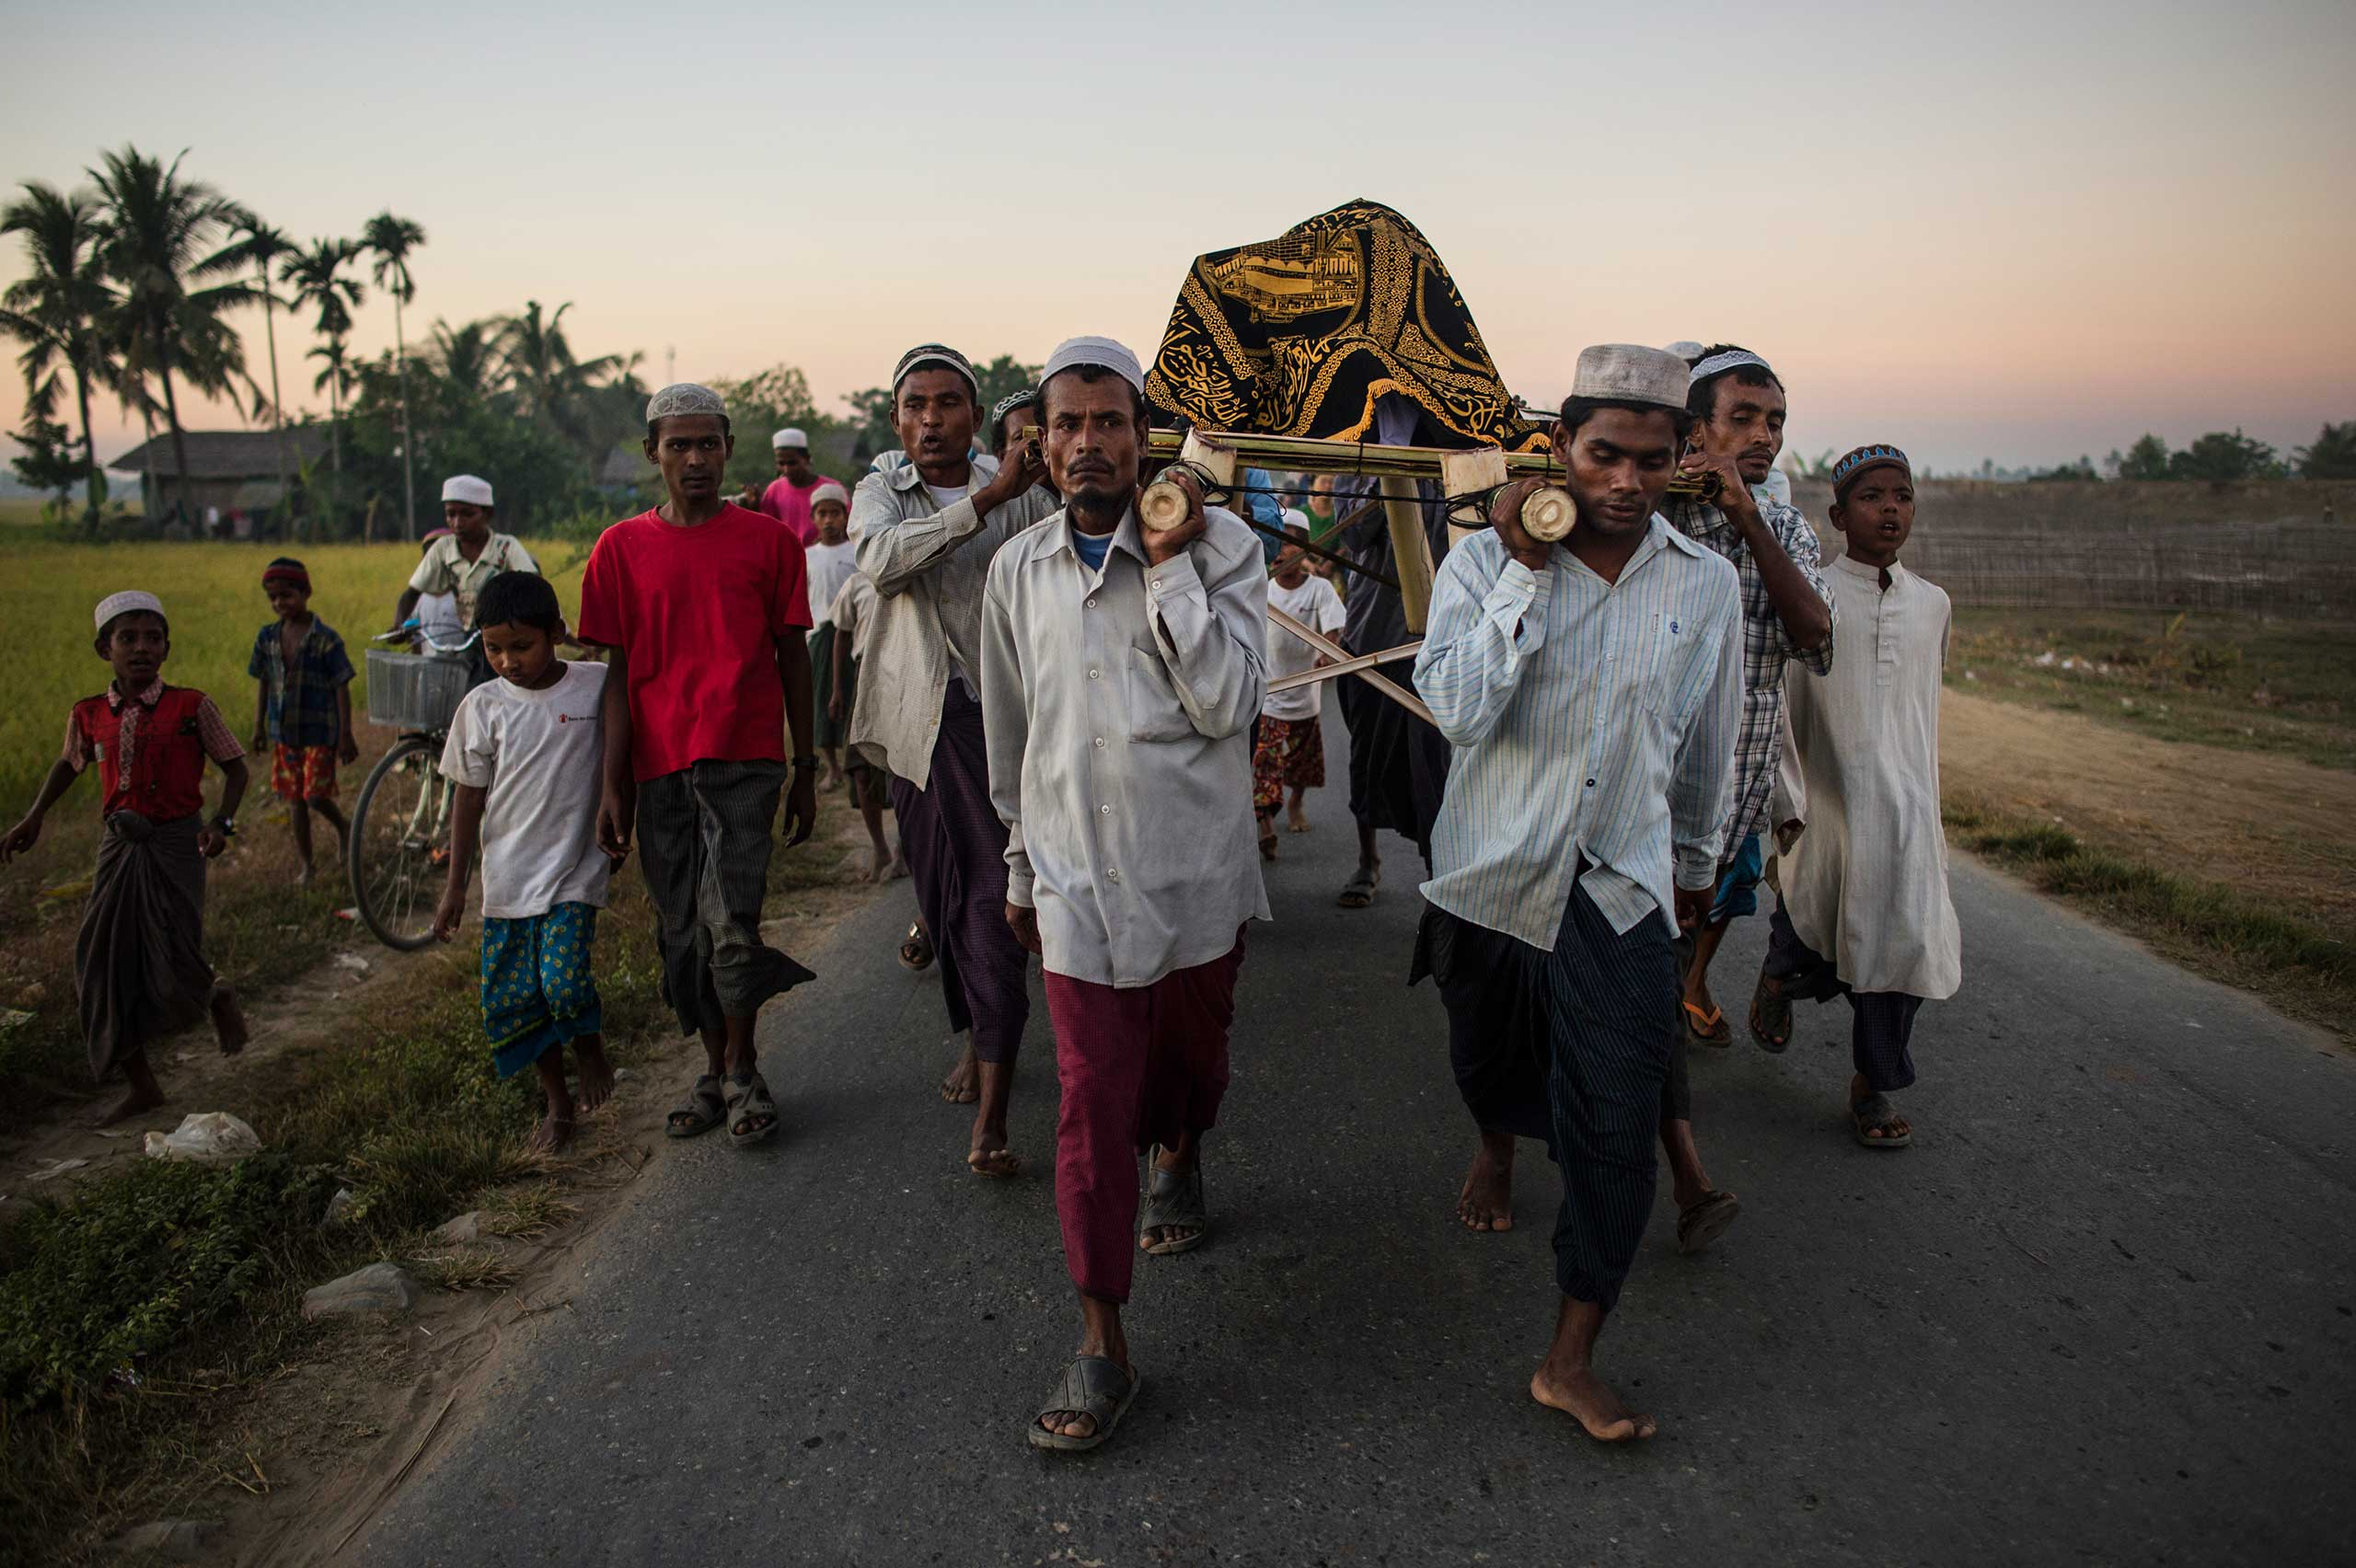 Rohingya men,  Burmese Muslims, carry the body of an elderly man who died of natural causes through the Thay Chaung camp for the Internally Displaced outside of Sittwe, which houses nearly 3000 people, Nov. 23, 2015.